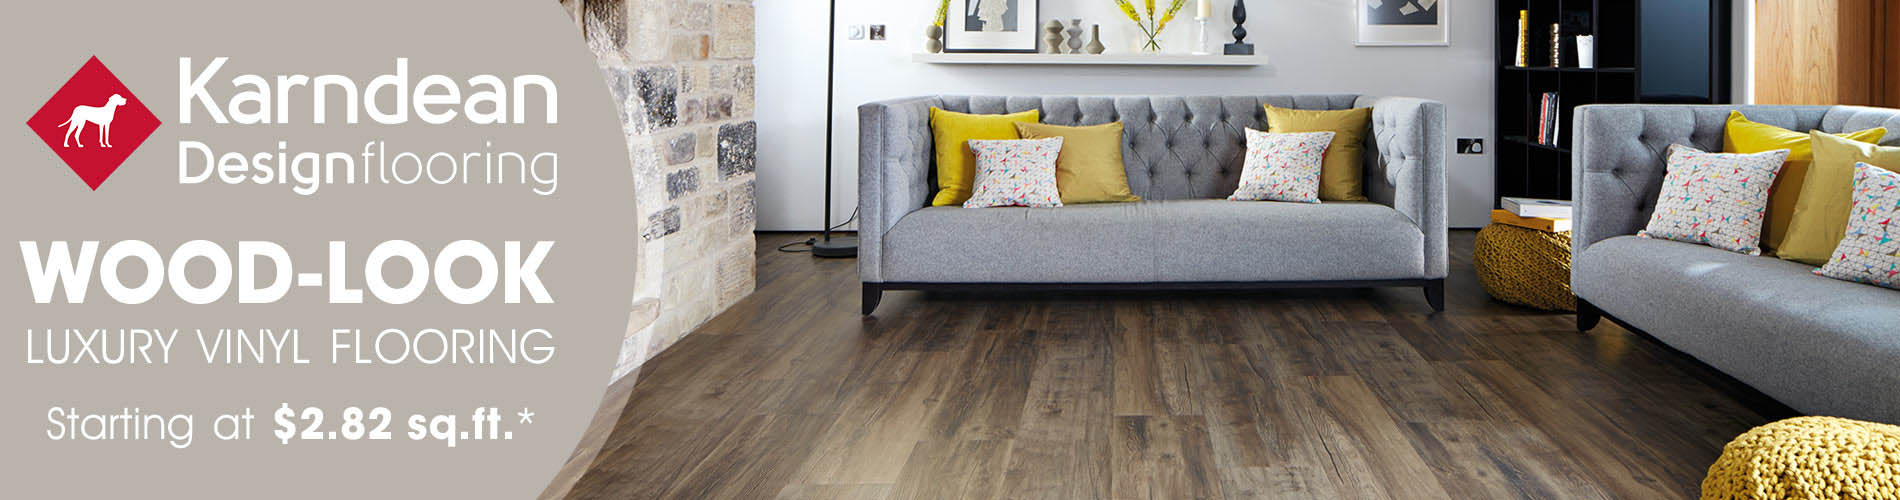 wood-look luxury vinyl starting at $2.82 sq.ft.